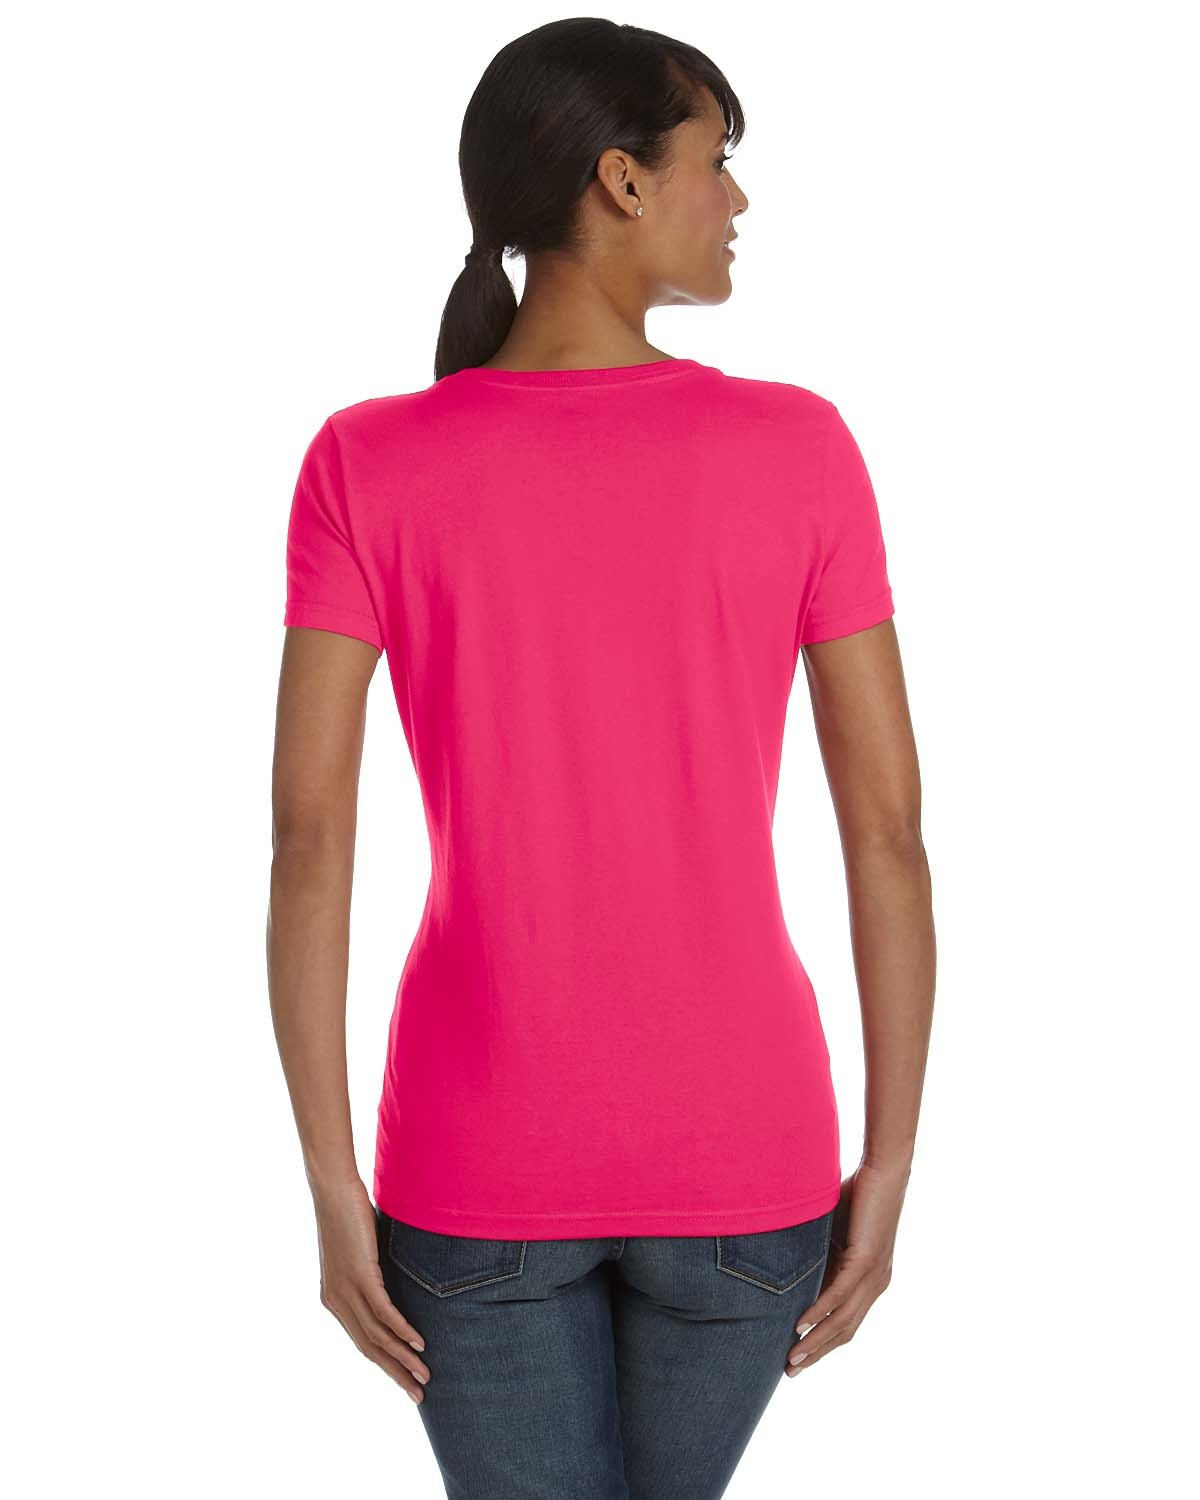 L39VR Fruit of the Loom CYBER PINK